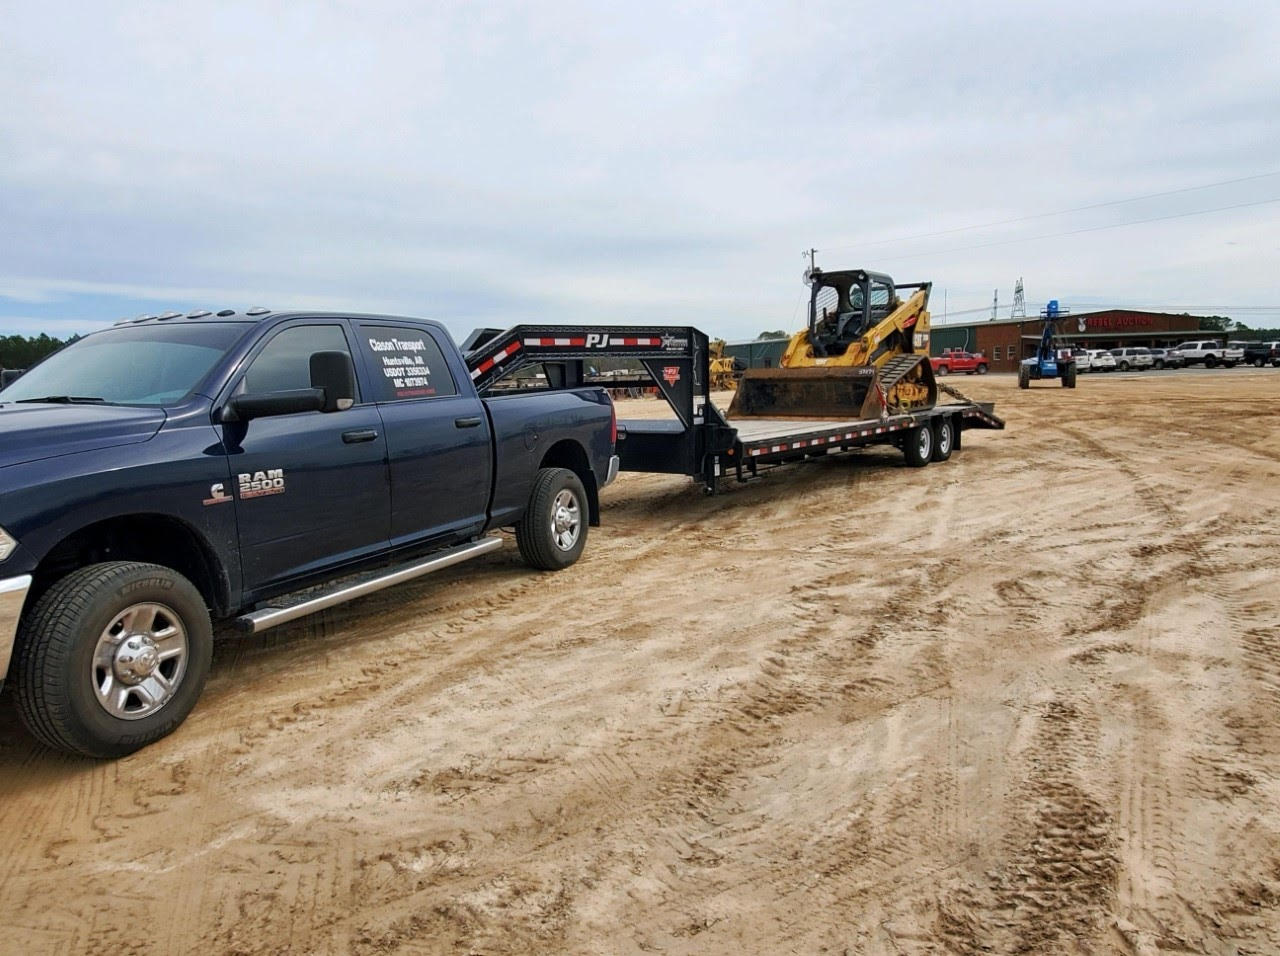 Shipping a skid steer in Georgia